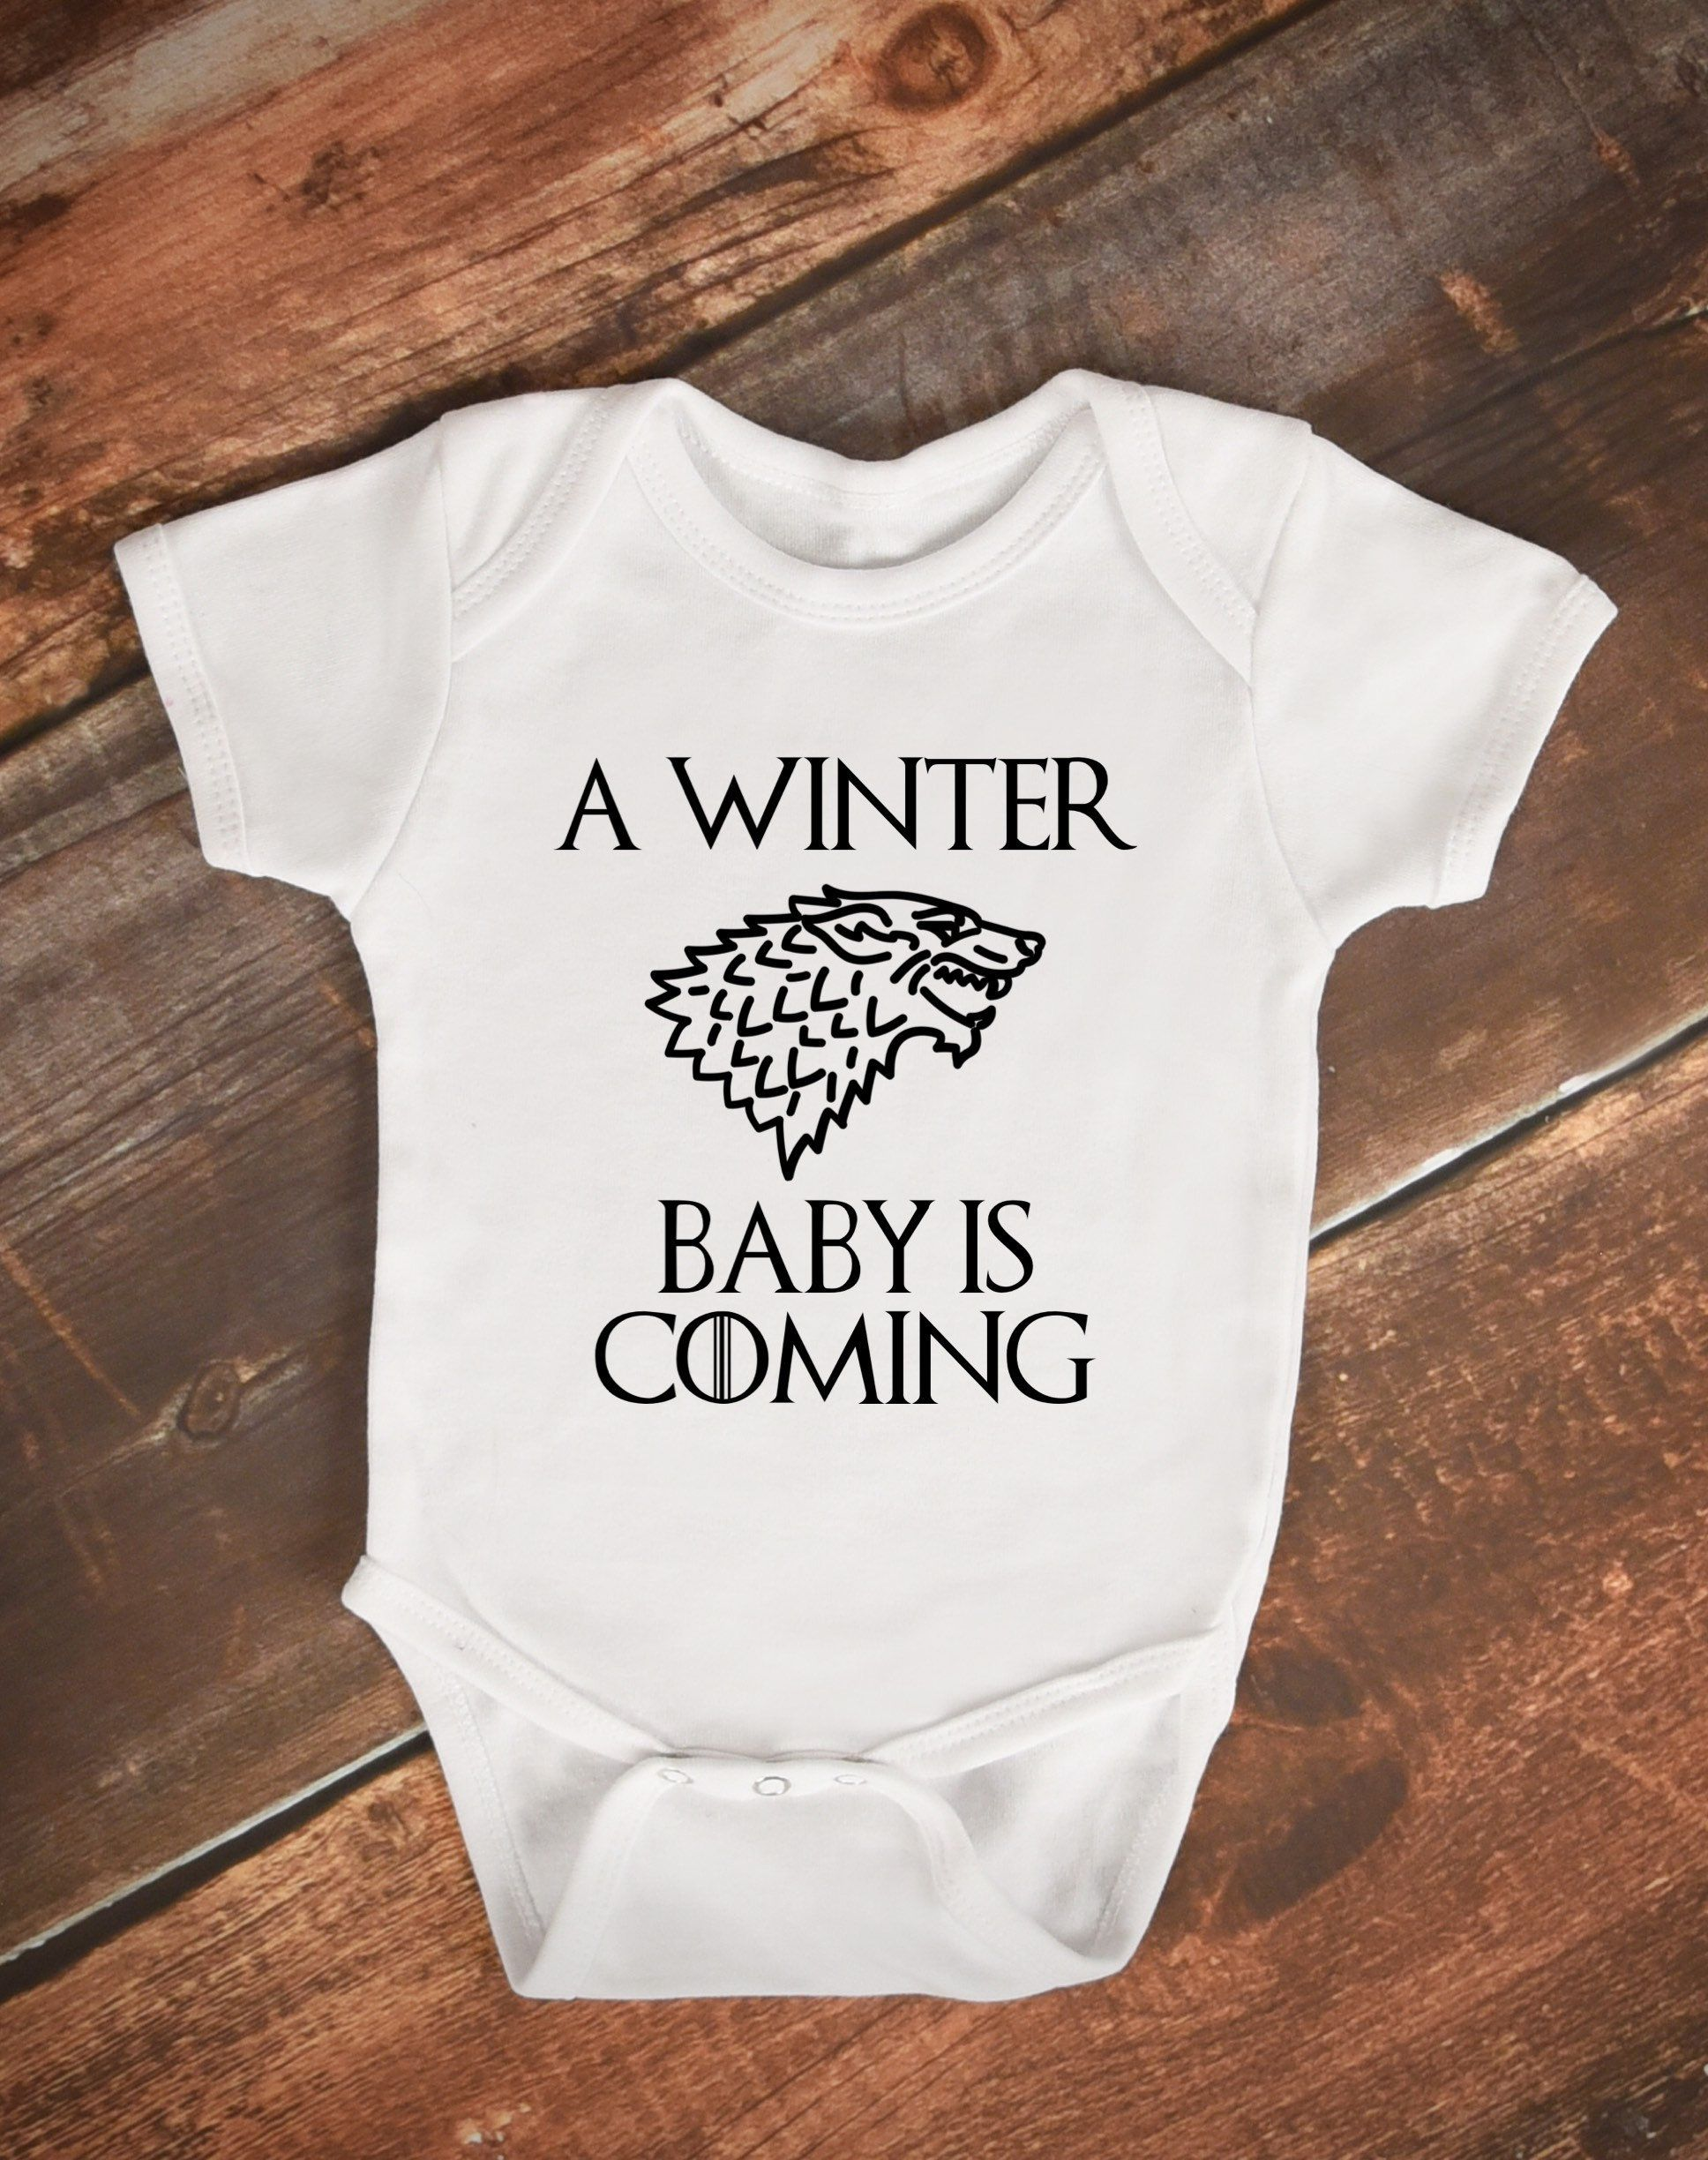 7a1a99901d67c A Winter Baby Is Coming Game of Thrones Baby Outfit/Bodysuit. Pregnancy  Announcement Baby Bodysuit. by FactorV on Etsy